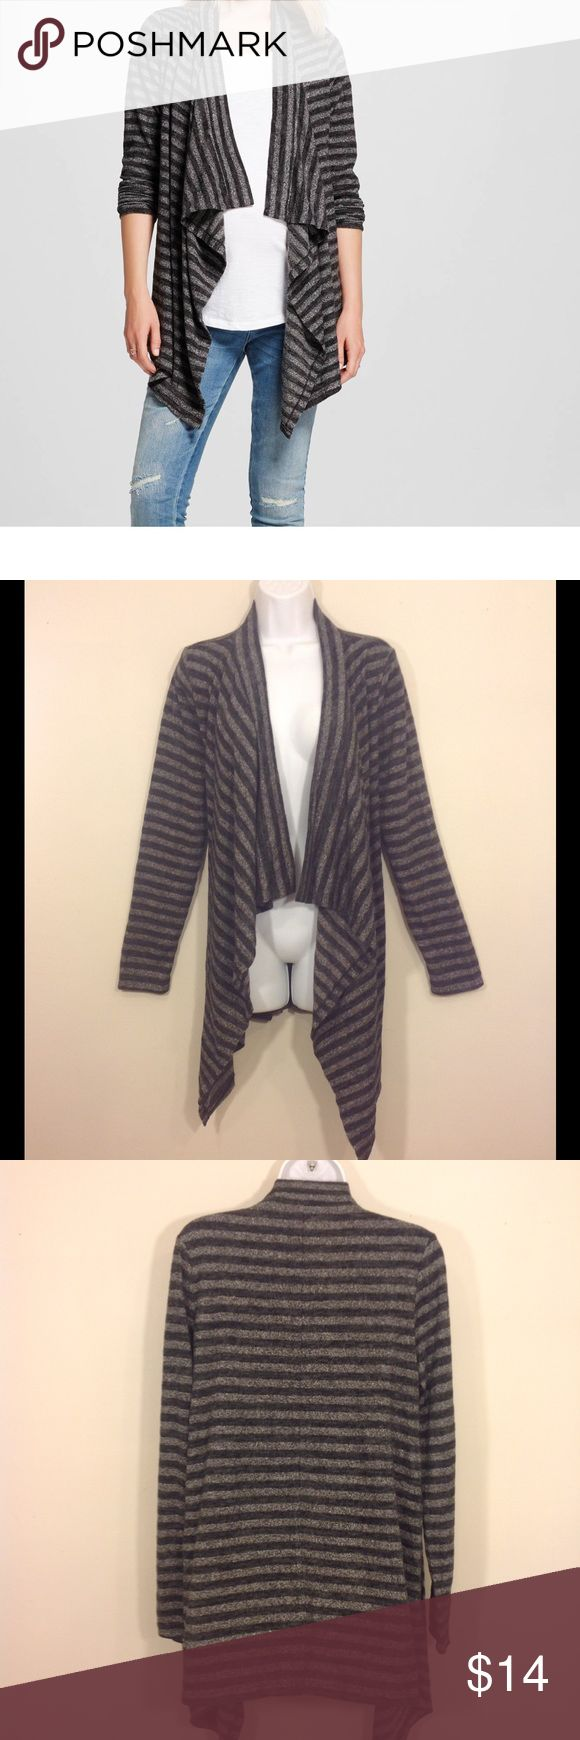 NWOT Striped Maternity Open Cardigan Fits S-M New without tags. This was a Target manufacturer sample.       Long sleeve, open flowy cardigan sweater  Tag Size:  S ( but can fit up to size M)  Fabric:  77% polyester, 21% rayon, 2% spandex Color:   black, gray         Pregnant, pregnancy, expecting, Liz Lange, cardigan, sweater  . Liz Lange for Target Sweaters Cardigans